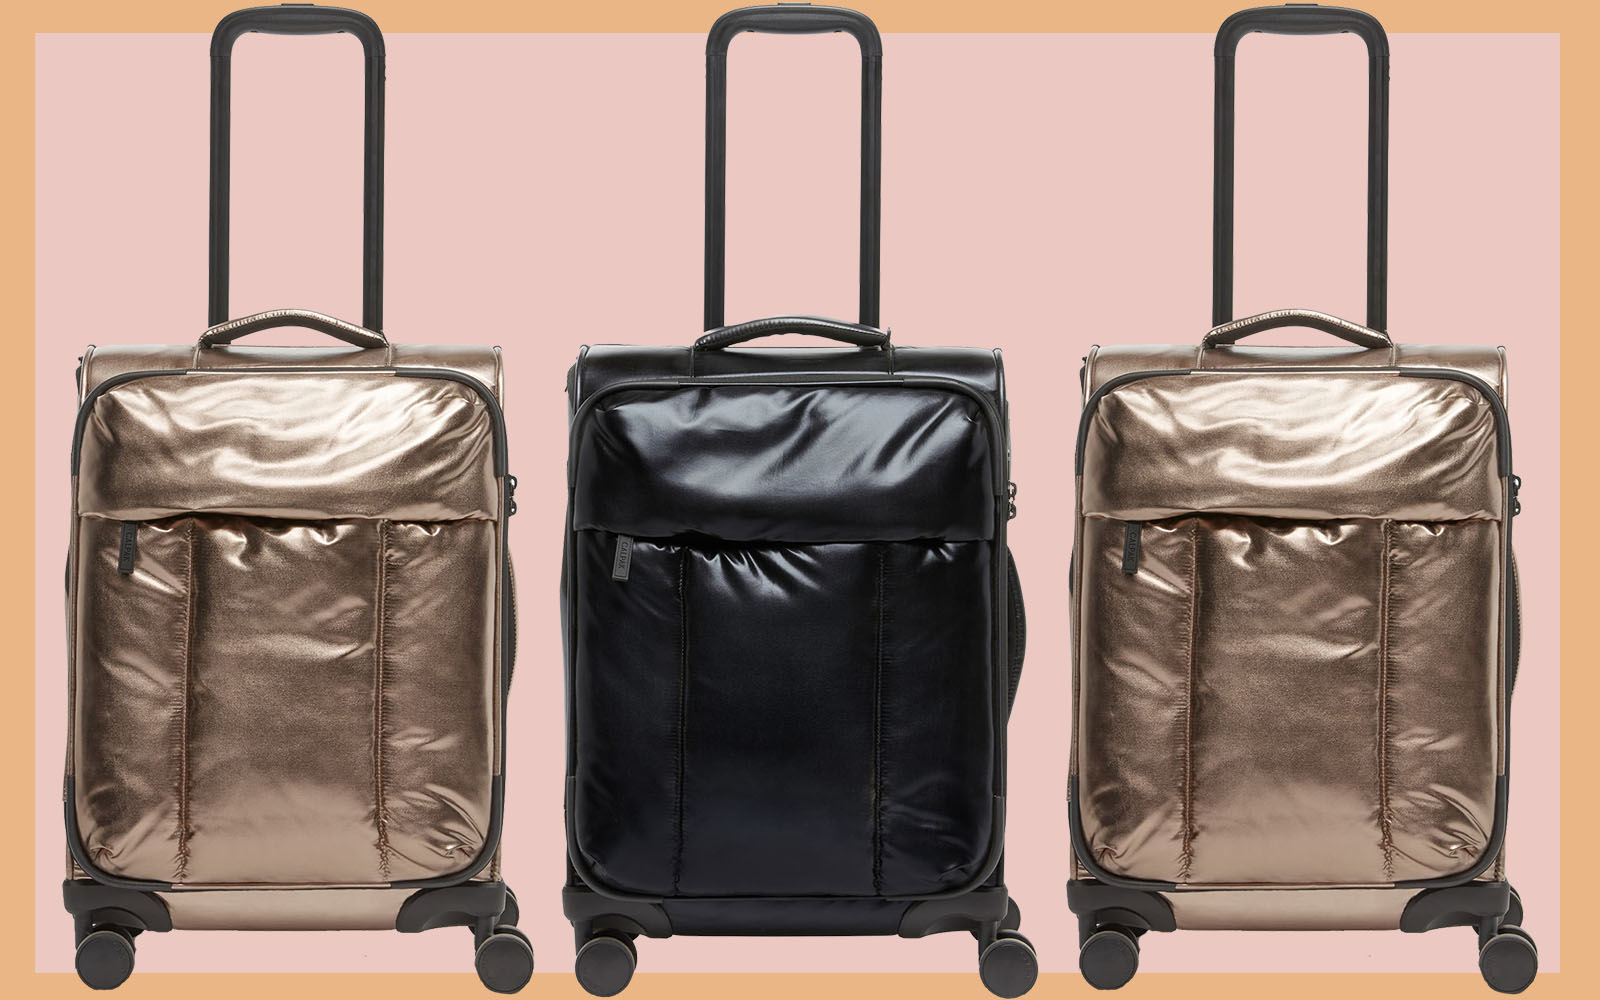 Calpak's New Soft-side Luggage Is Guaranteed to Stand Out at Baggage Claim